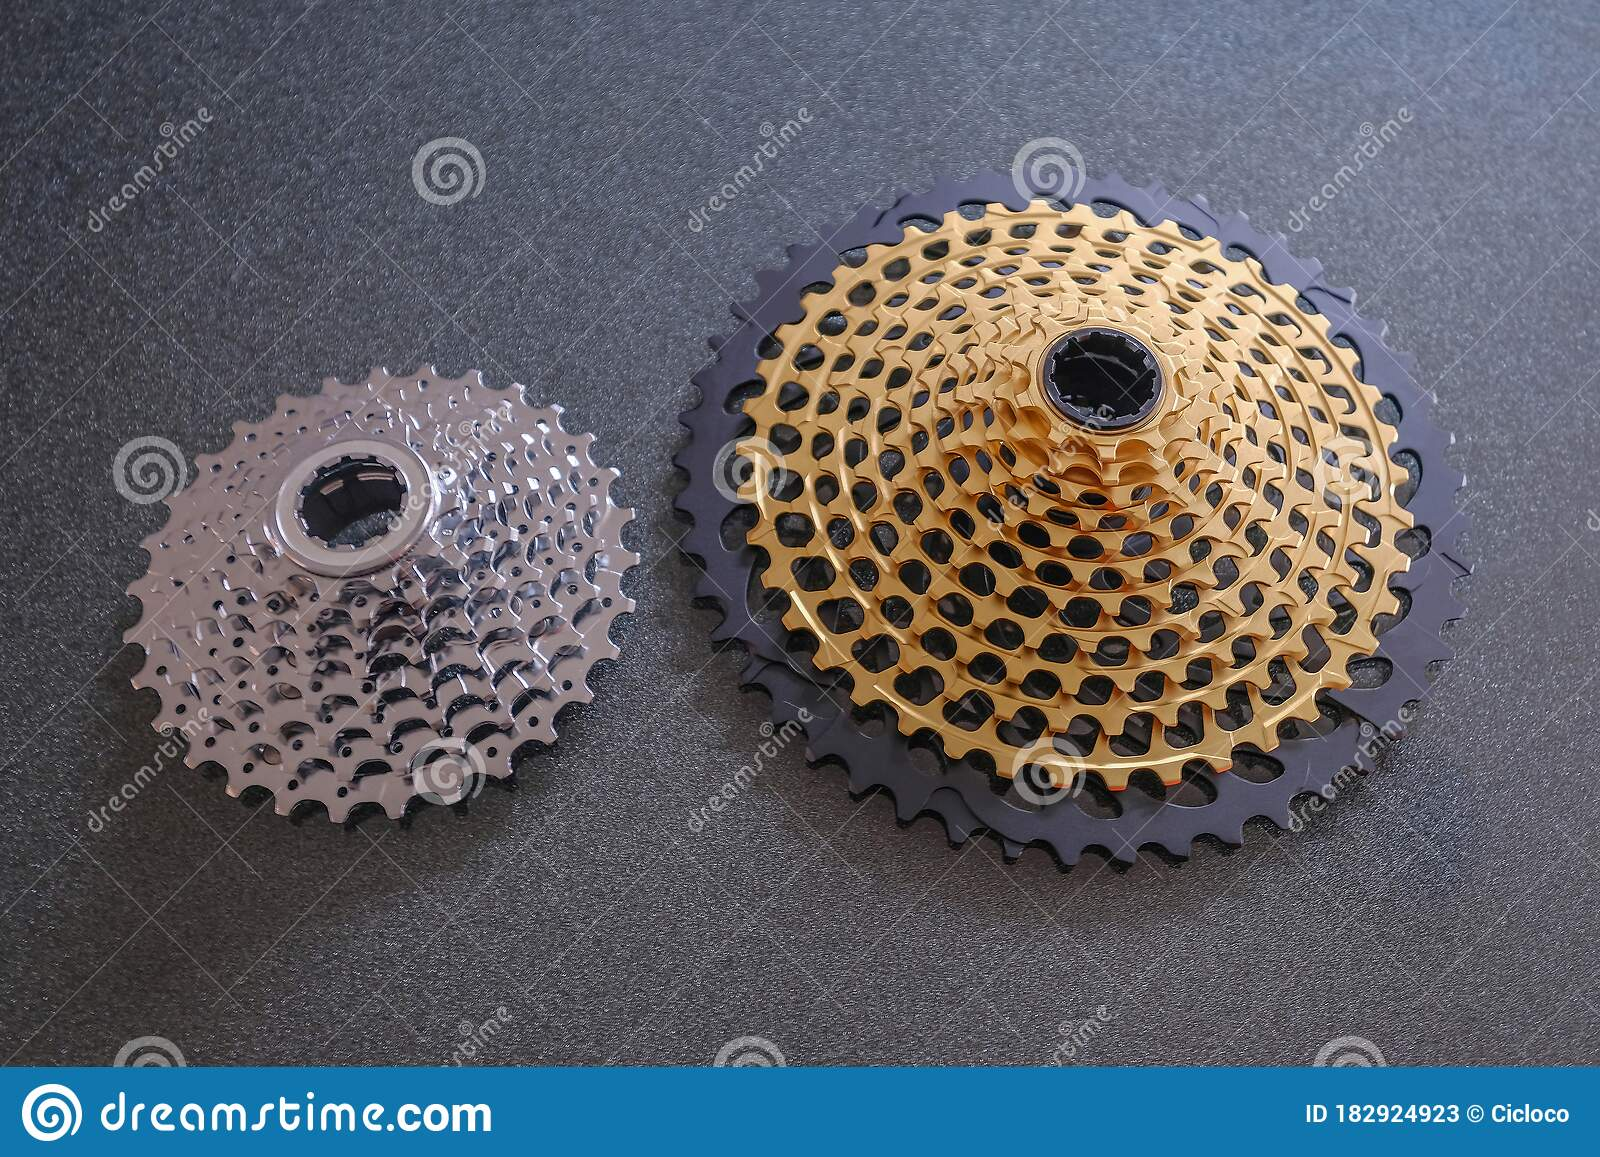 Rear Mountain Bike Cassette, Size Comparison 12-speed Vs 8-speed, Small And  Big, In Silver And Golden Color Stock Image - Image of compare, mountain:  182924923